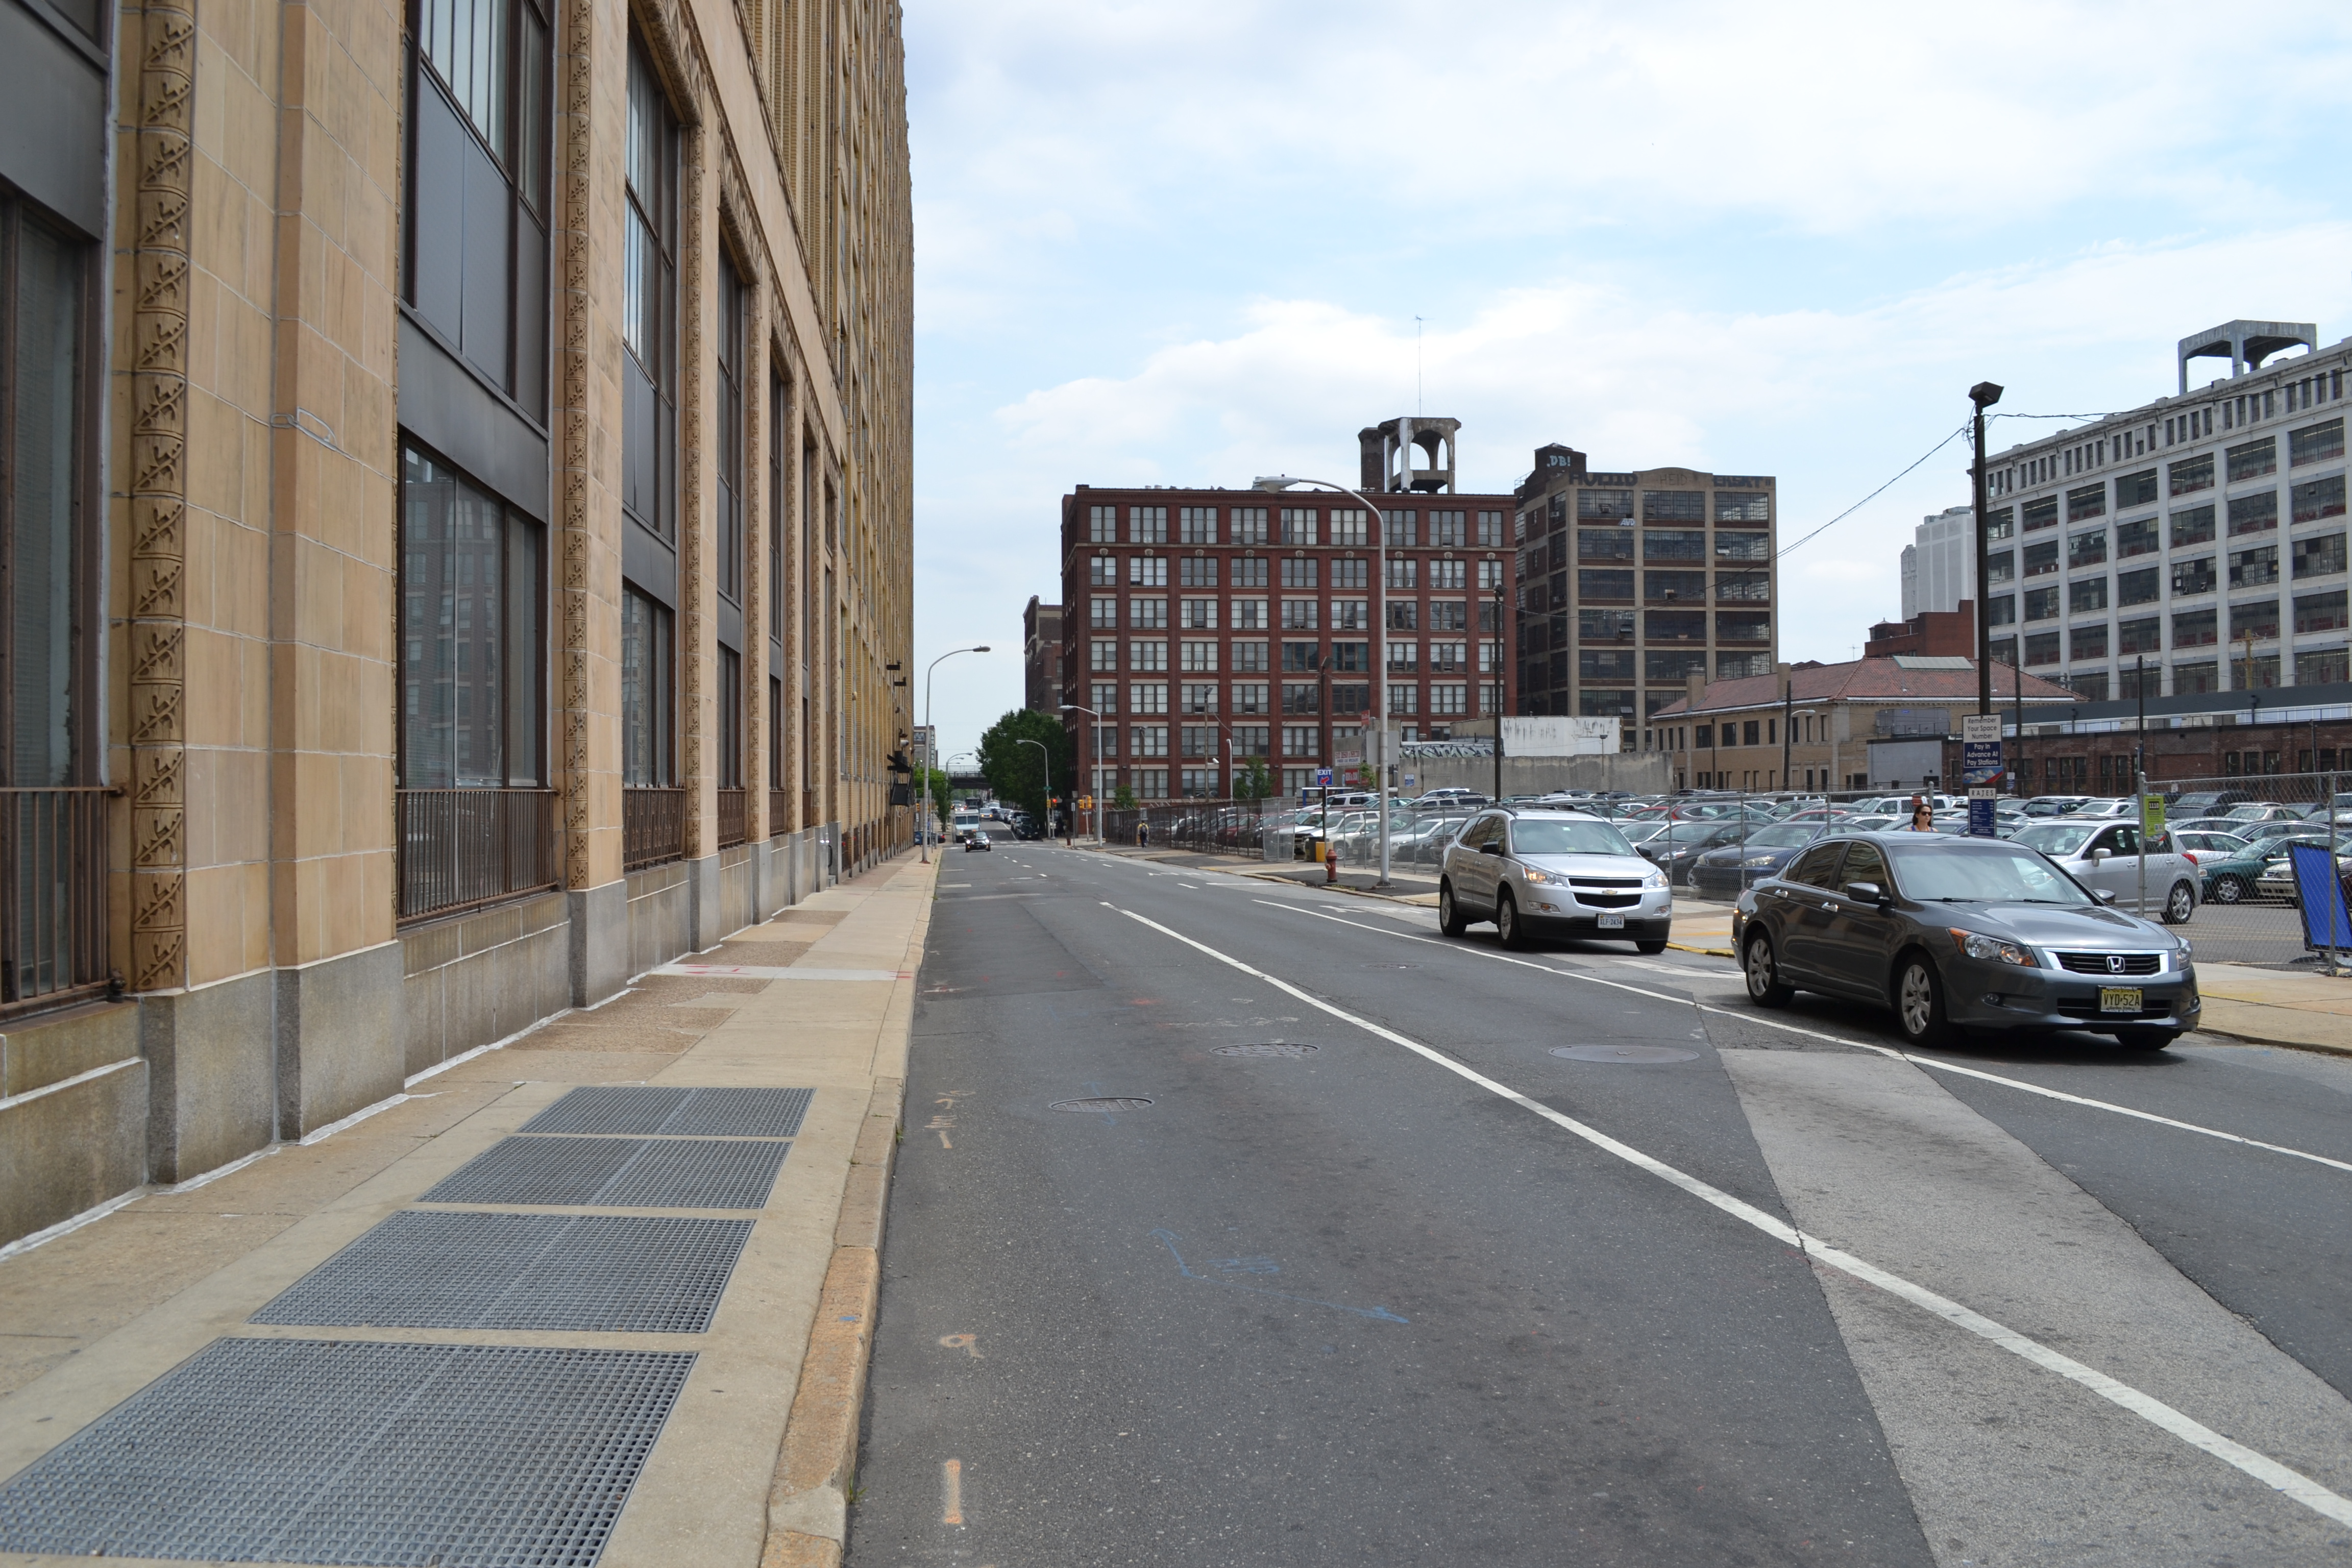 The designated right-turn lane from Callowhill Street onto Broad Street will likely be closed during construction